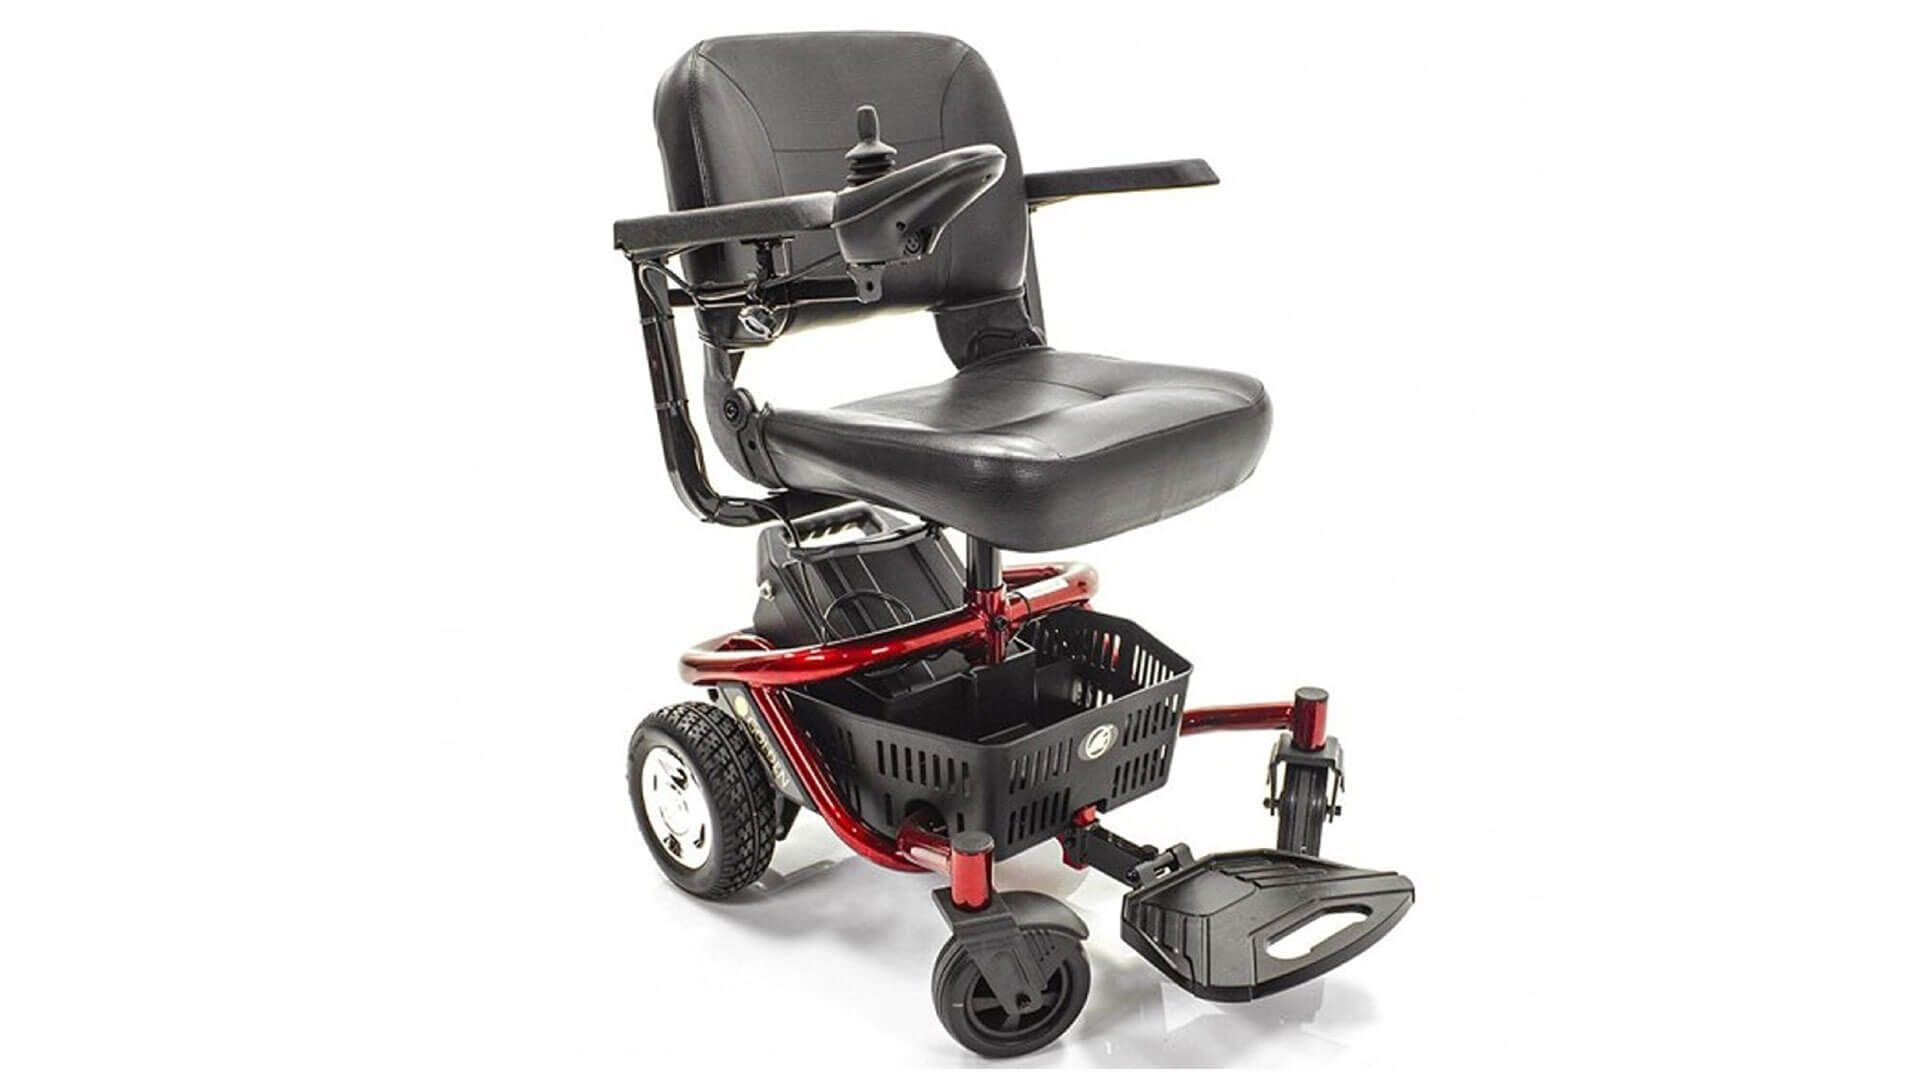 Compact power chair review the compact comfy power